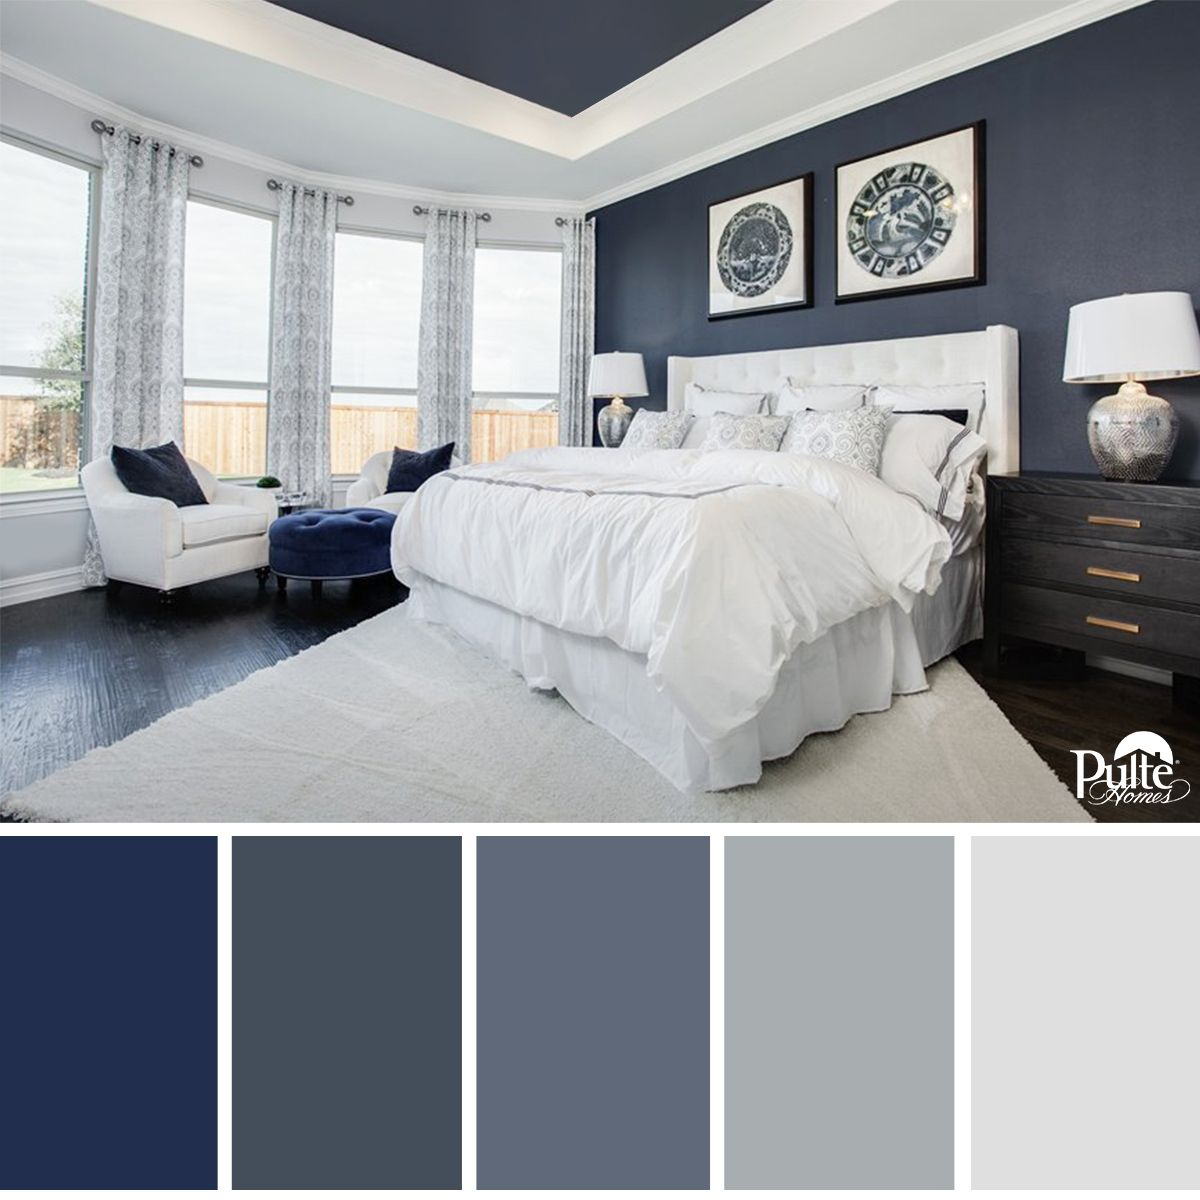 Bedroom Color Schemes With Gray Images Of Bedroom Colors Paint Ideas For Master Bedroom And Bath Bedroom Ideas Accent Wall: This Bedroom Design Has The Right Idea. The Rich Blue